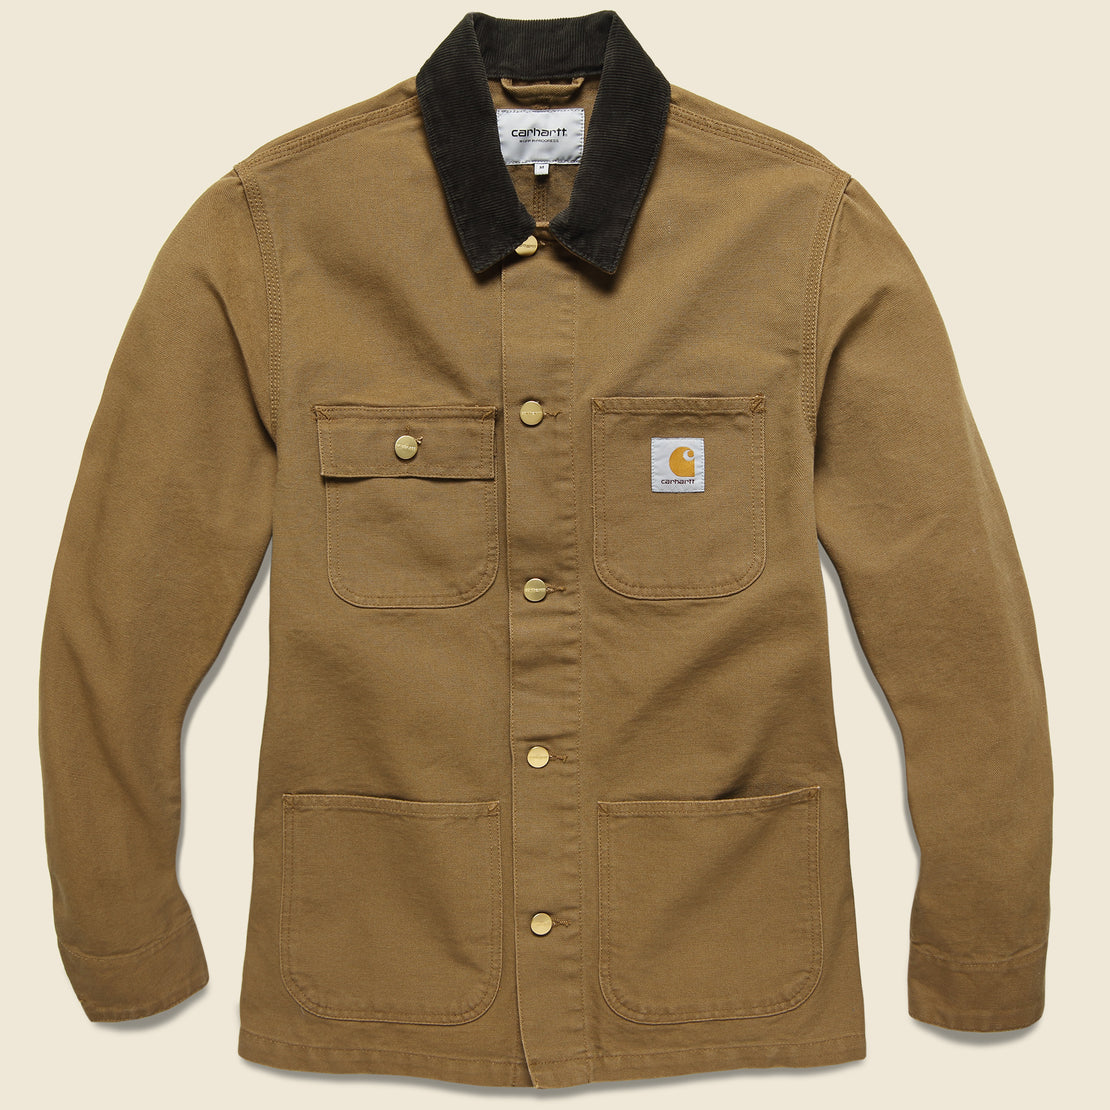 Carhartt WIP Michigan Chore Coat - Hamilton Brown/Tobacco